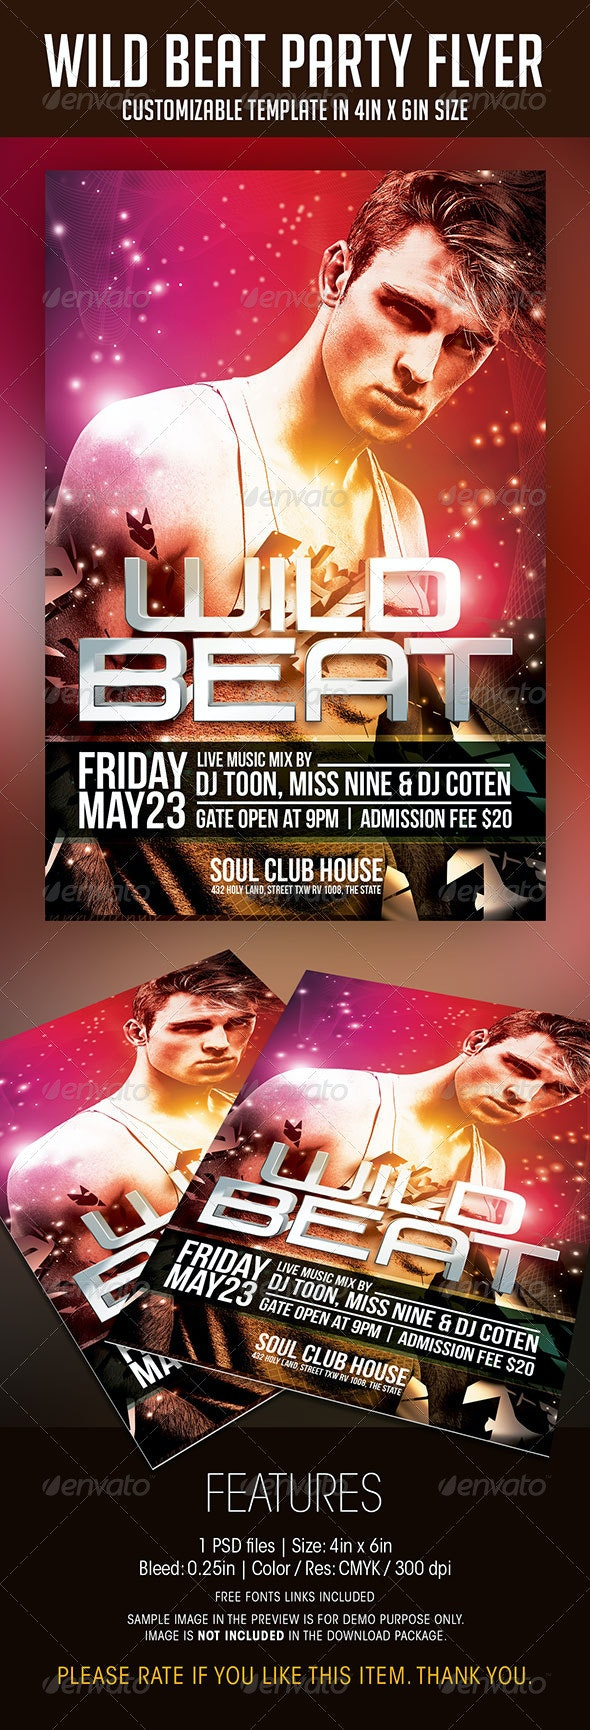 Wild Beat Party Flyer - Clubs & Parties Events